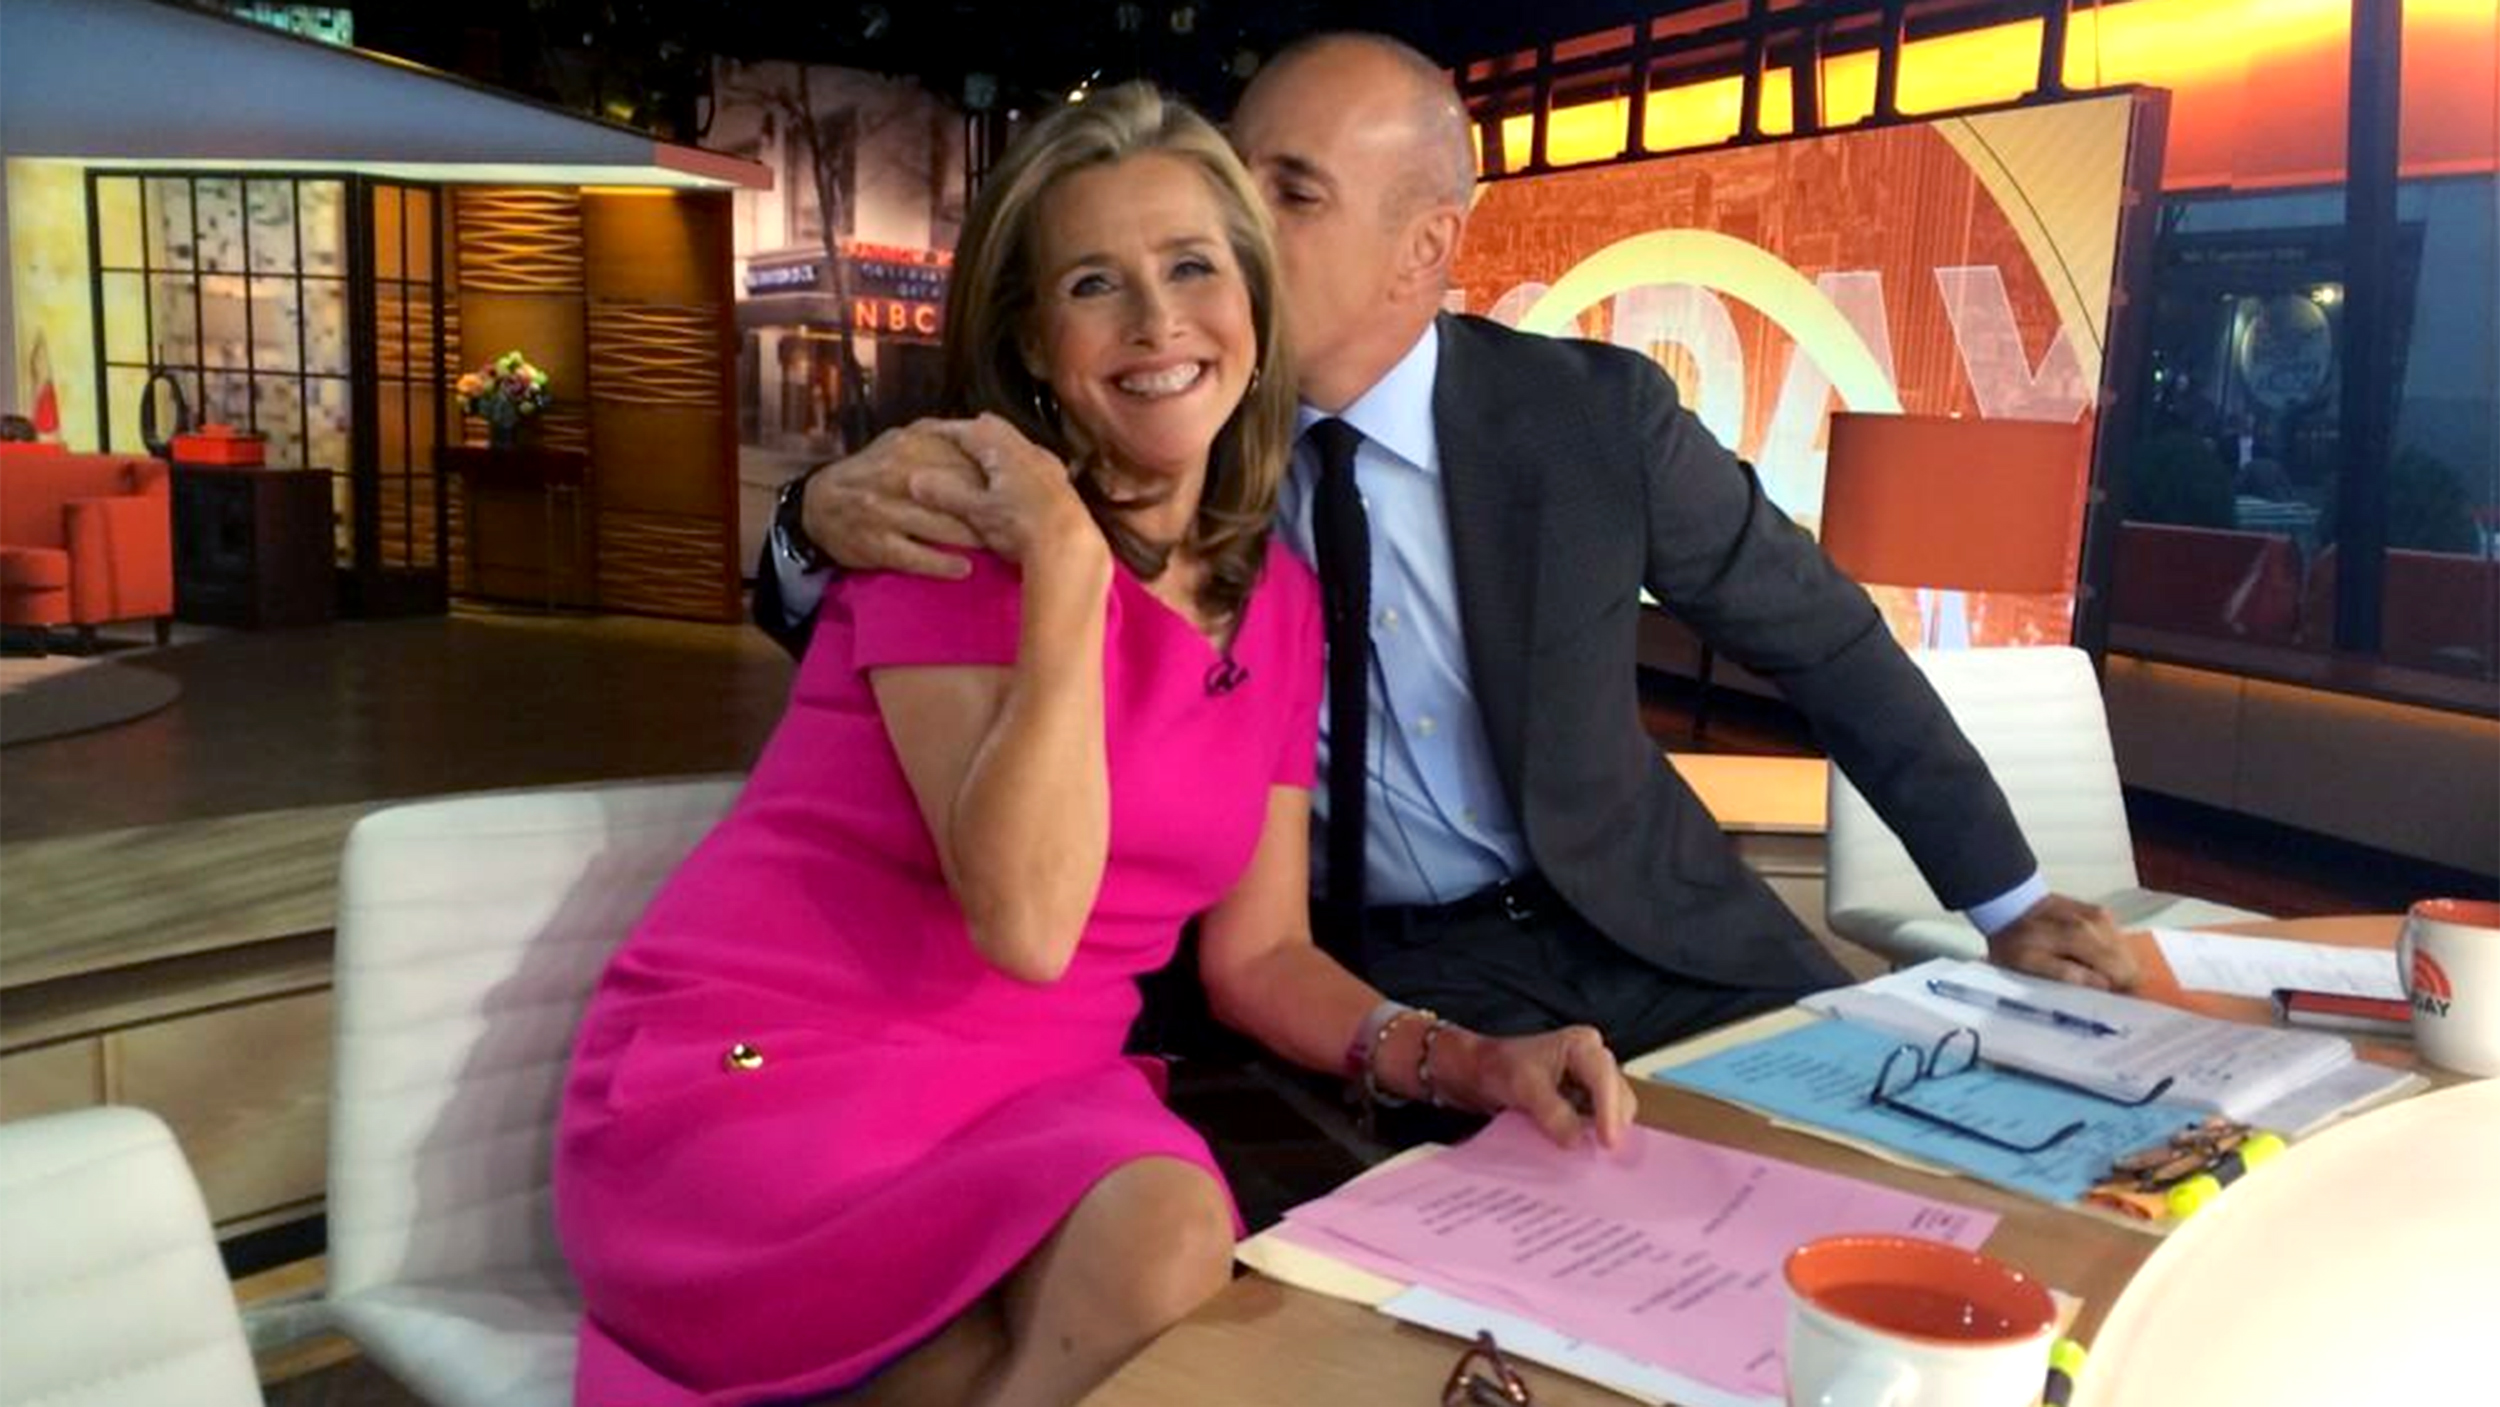 Meredith vieira upskirt on the today show - 3 part 8